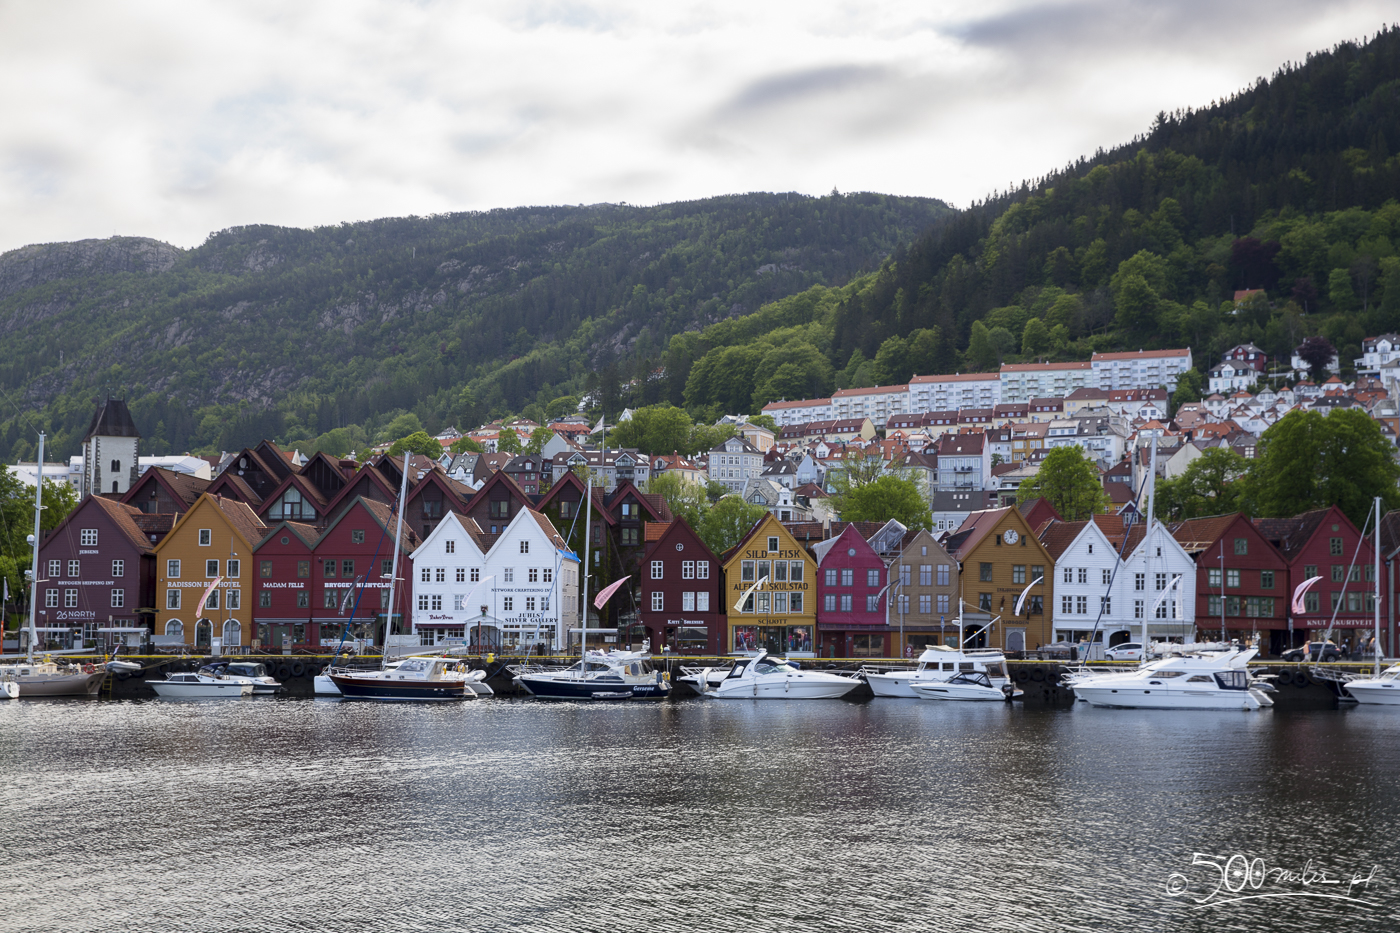 Leaving Bergen, Norway